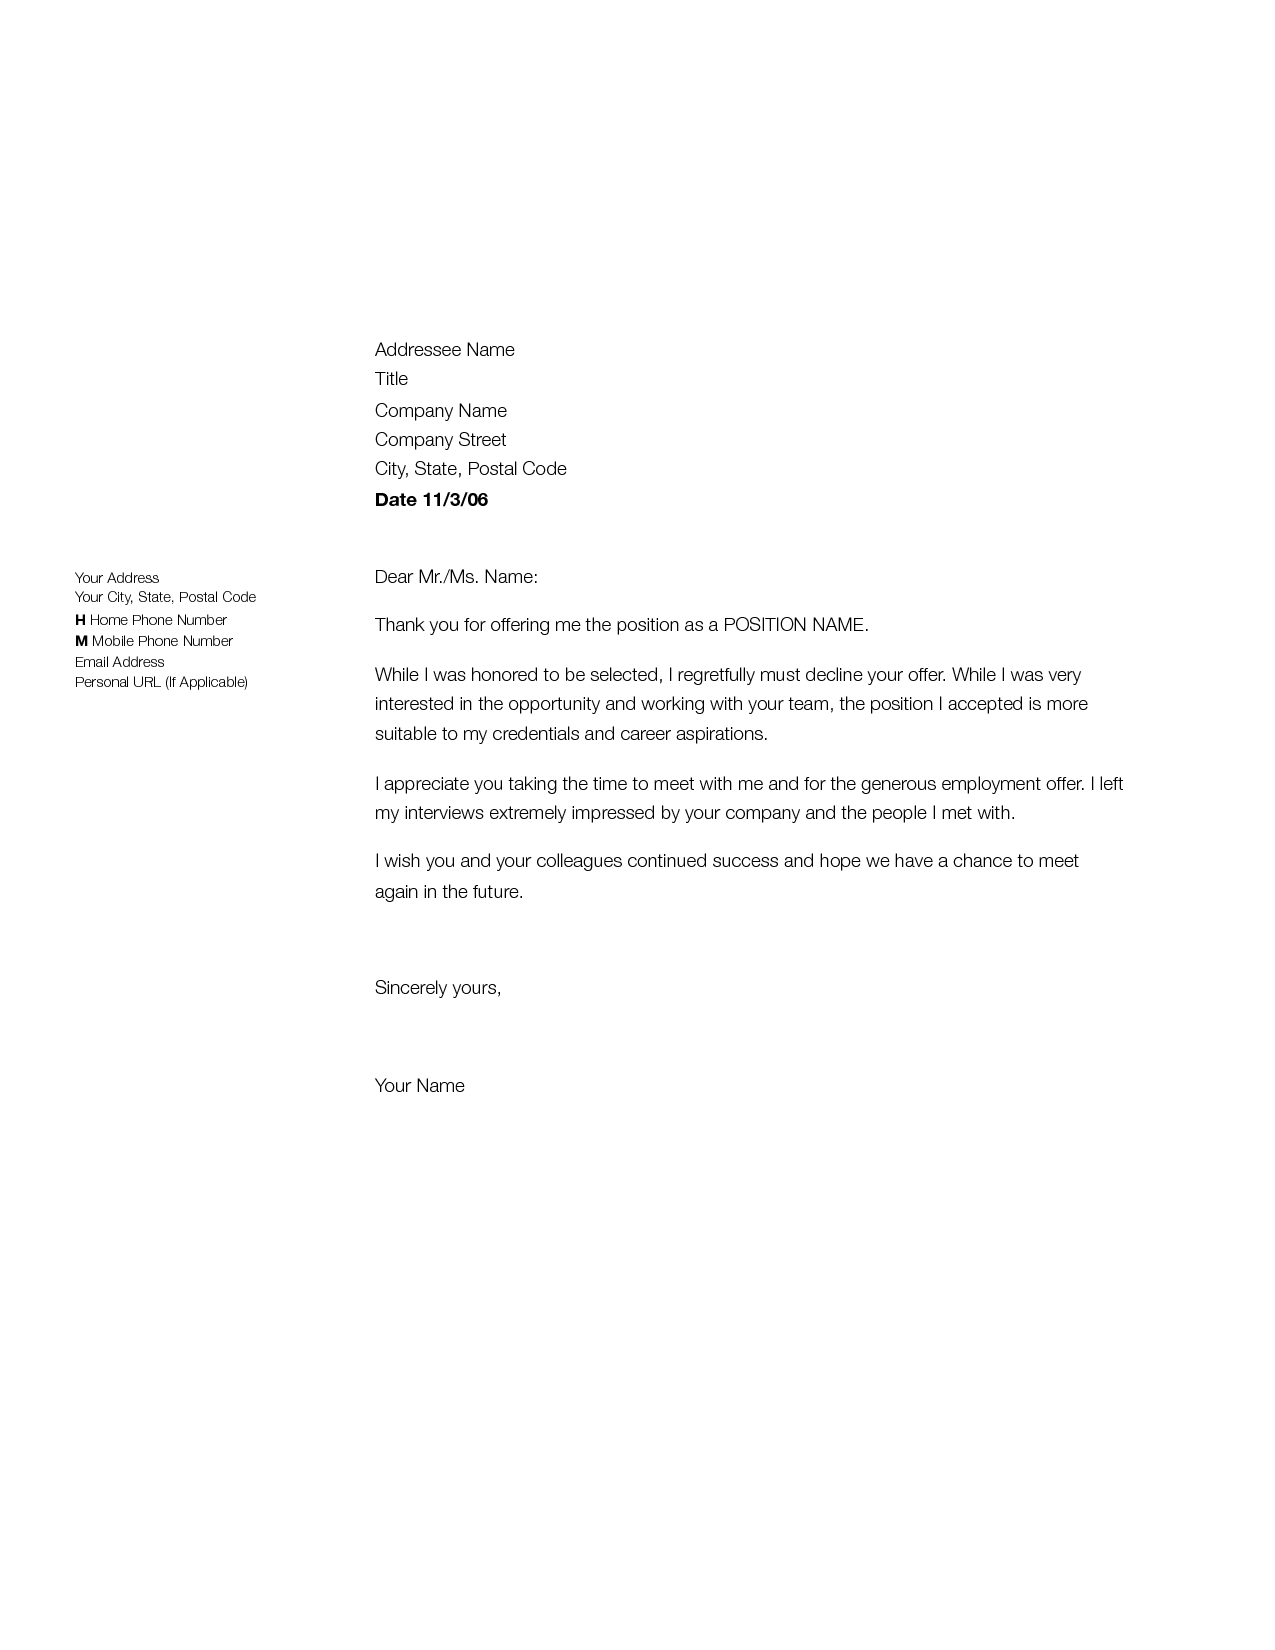 Job Decline Letter sample employment rejection letter to let an – Decline Offer Letter